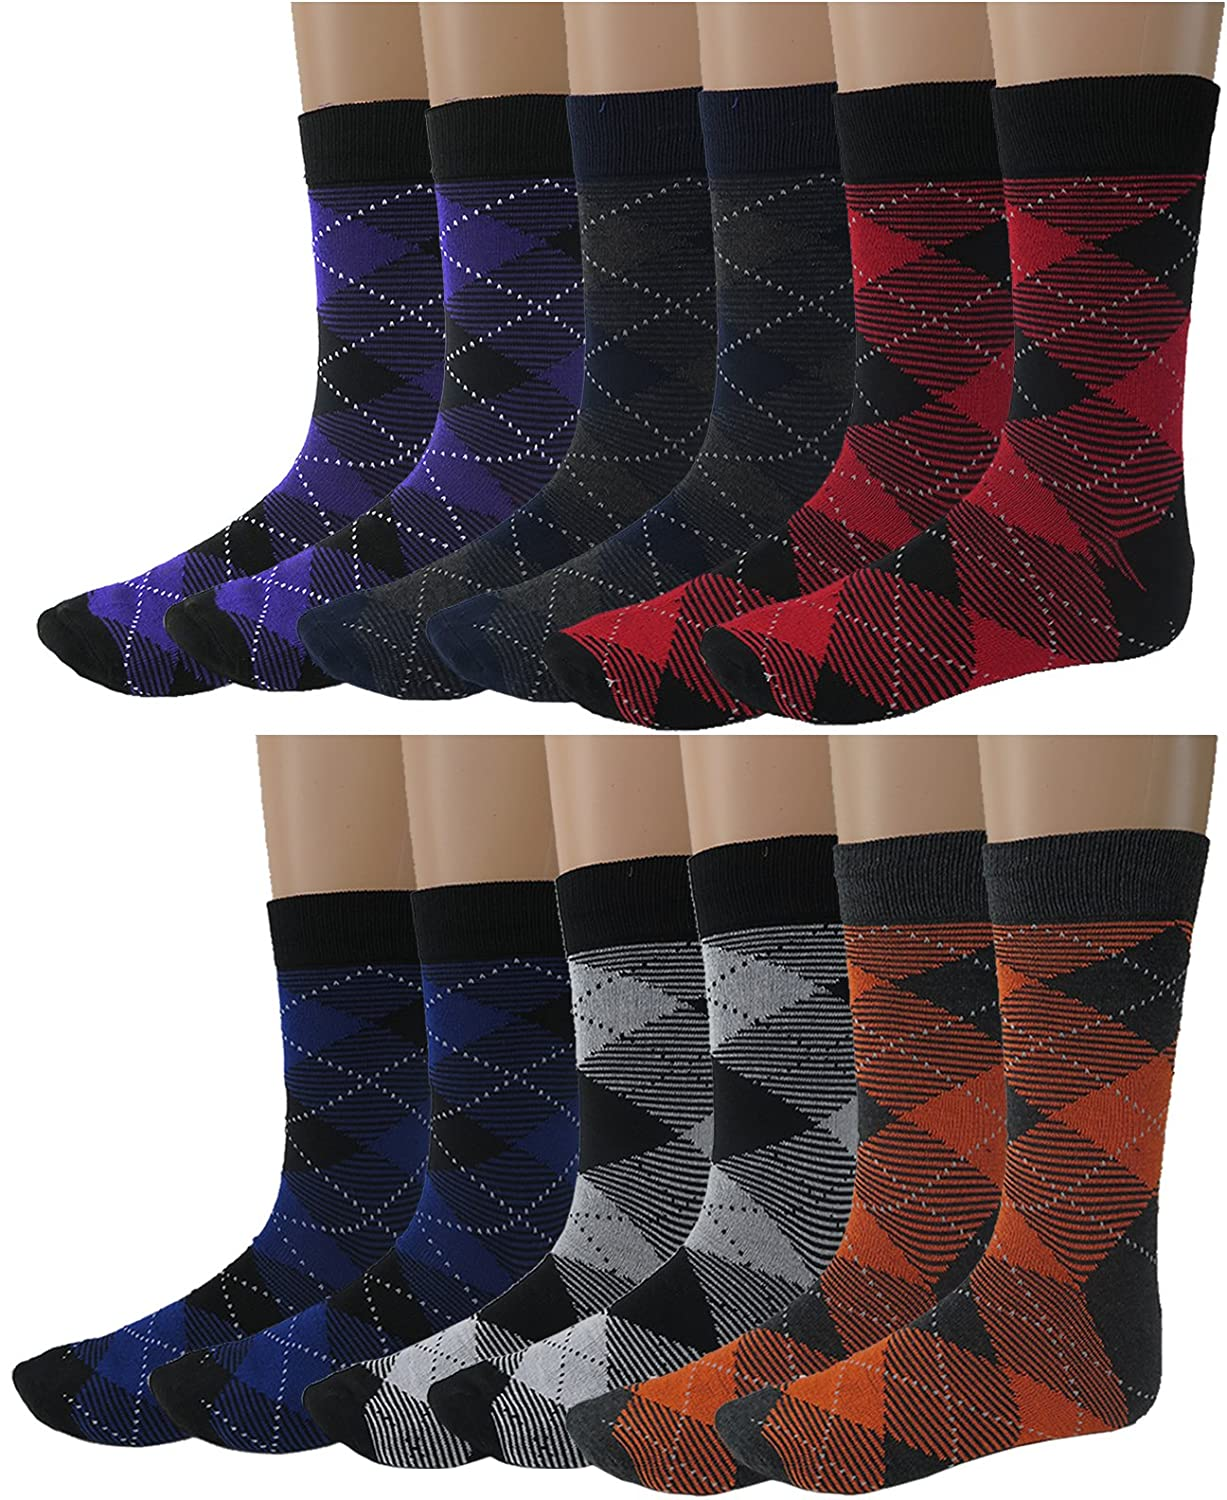 Debra Weitzner mens Dress Socks With Colorful Stripes Patterns- Cotton - Crew length - Pack of 12 Pairs sck-drss-12pk-3077